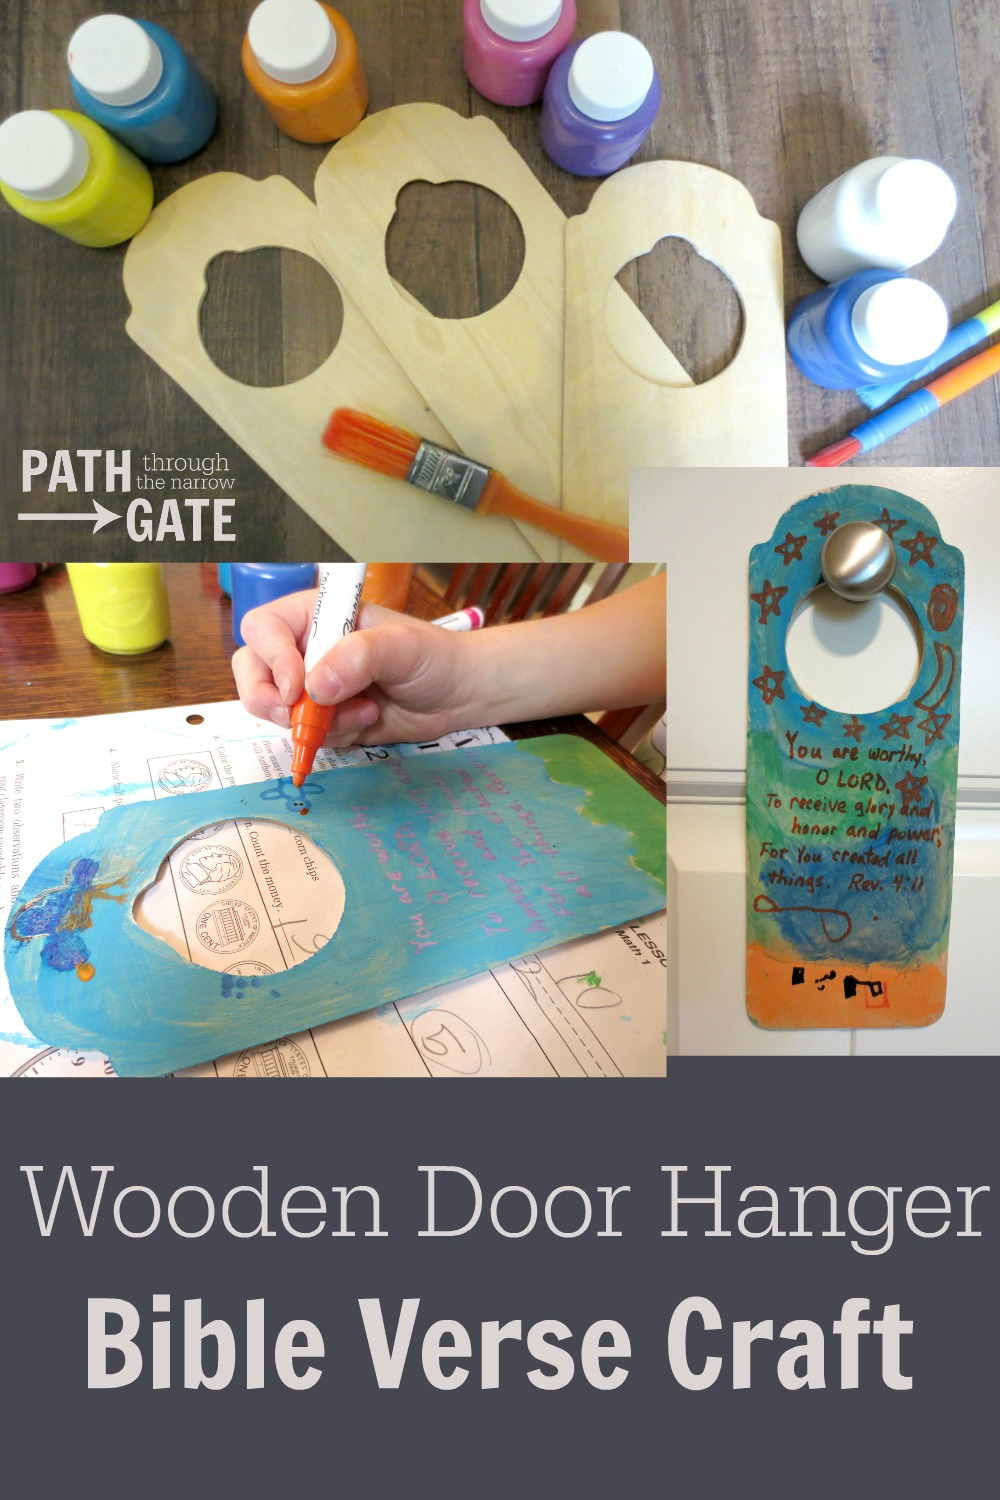 Are you looking for an inexpensive but enjoyable craft to help your children learn Bible verses? This Bible verse door hangers craft is a fun way to do just that!